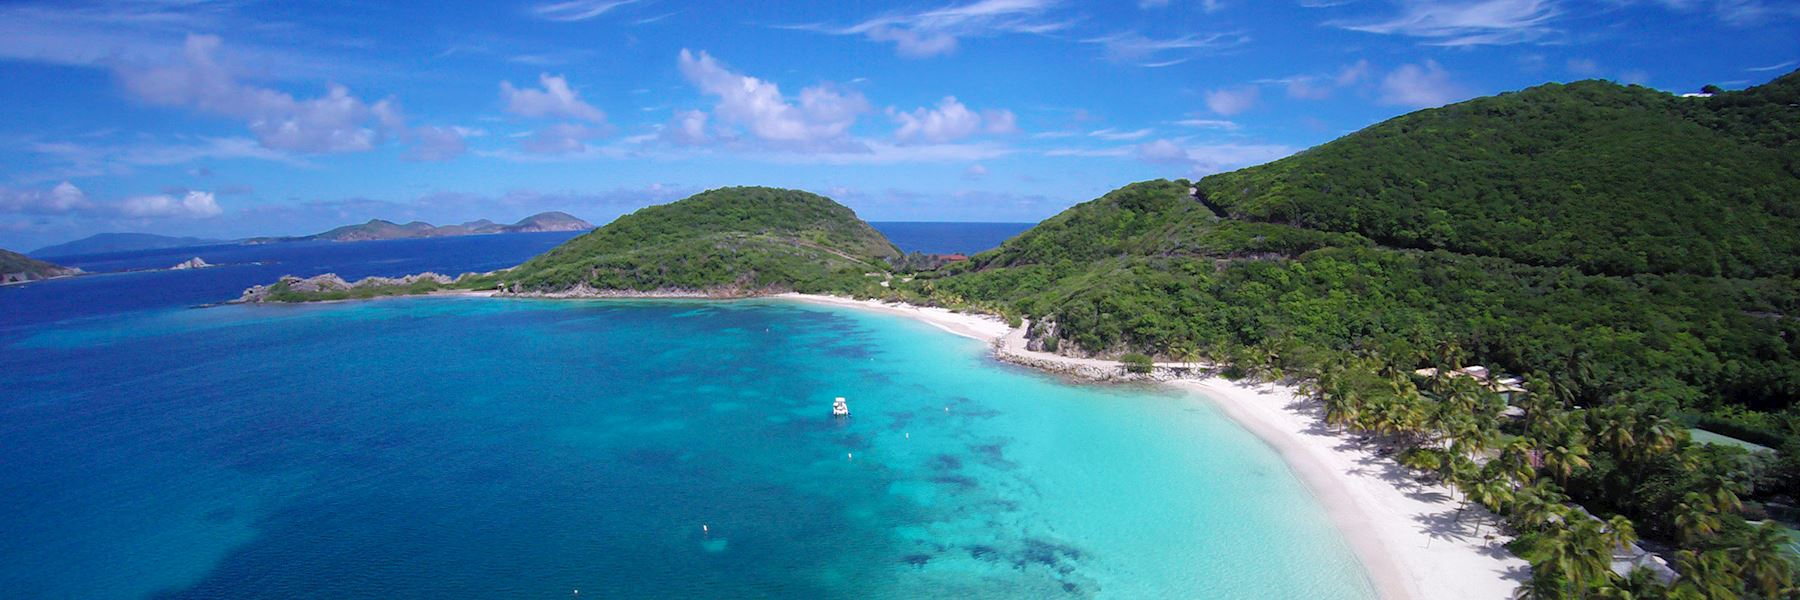 When is the best time to visit British Virgin Islands?